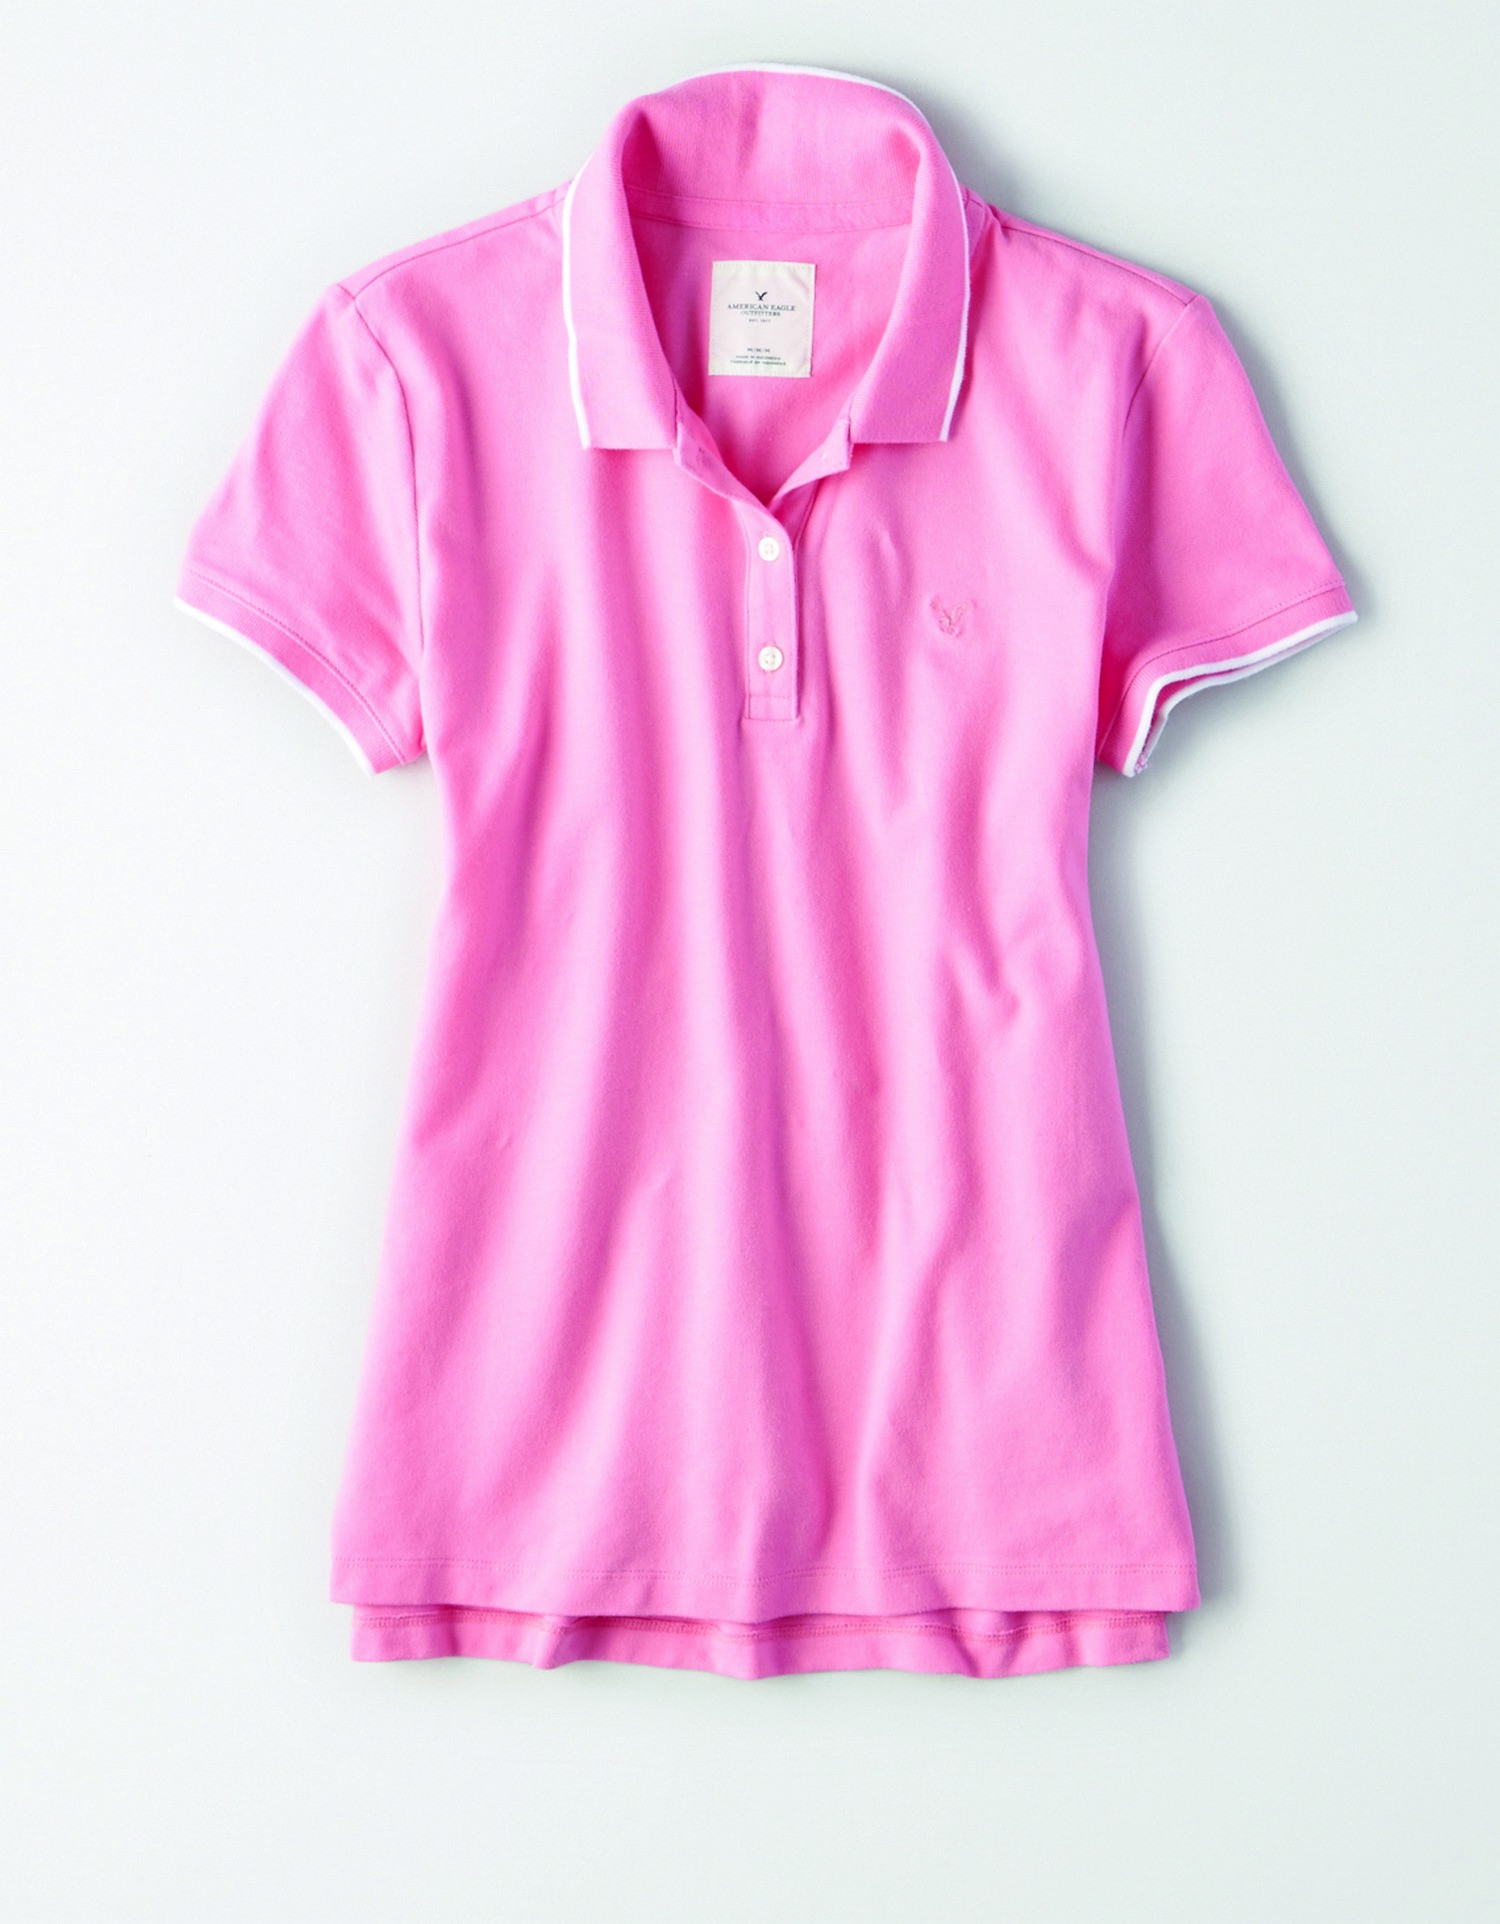 AE - INTL - Apparel - W - Tipped Polo - Pink with white Tipping - Pink embroidered eagle on left chest JP